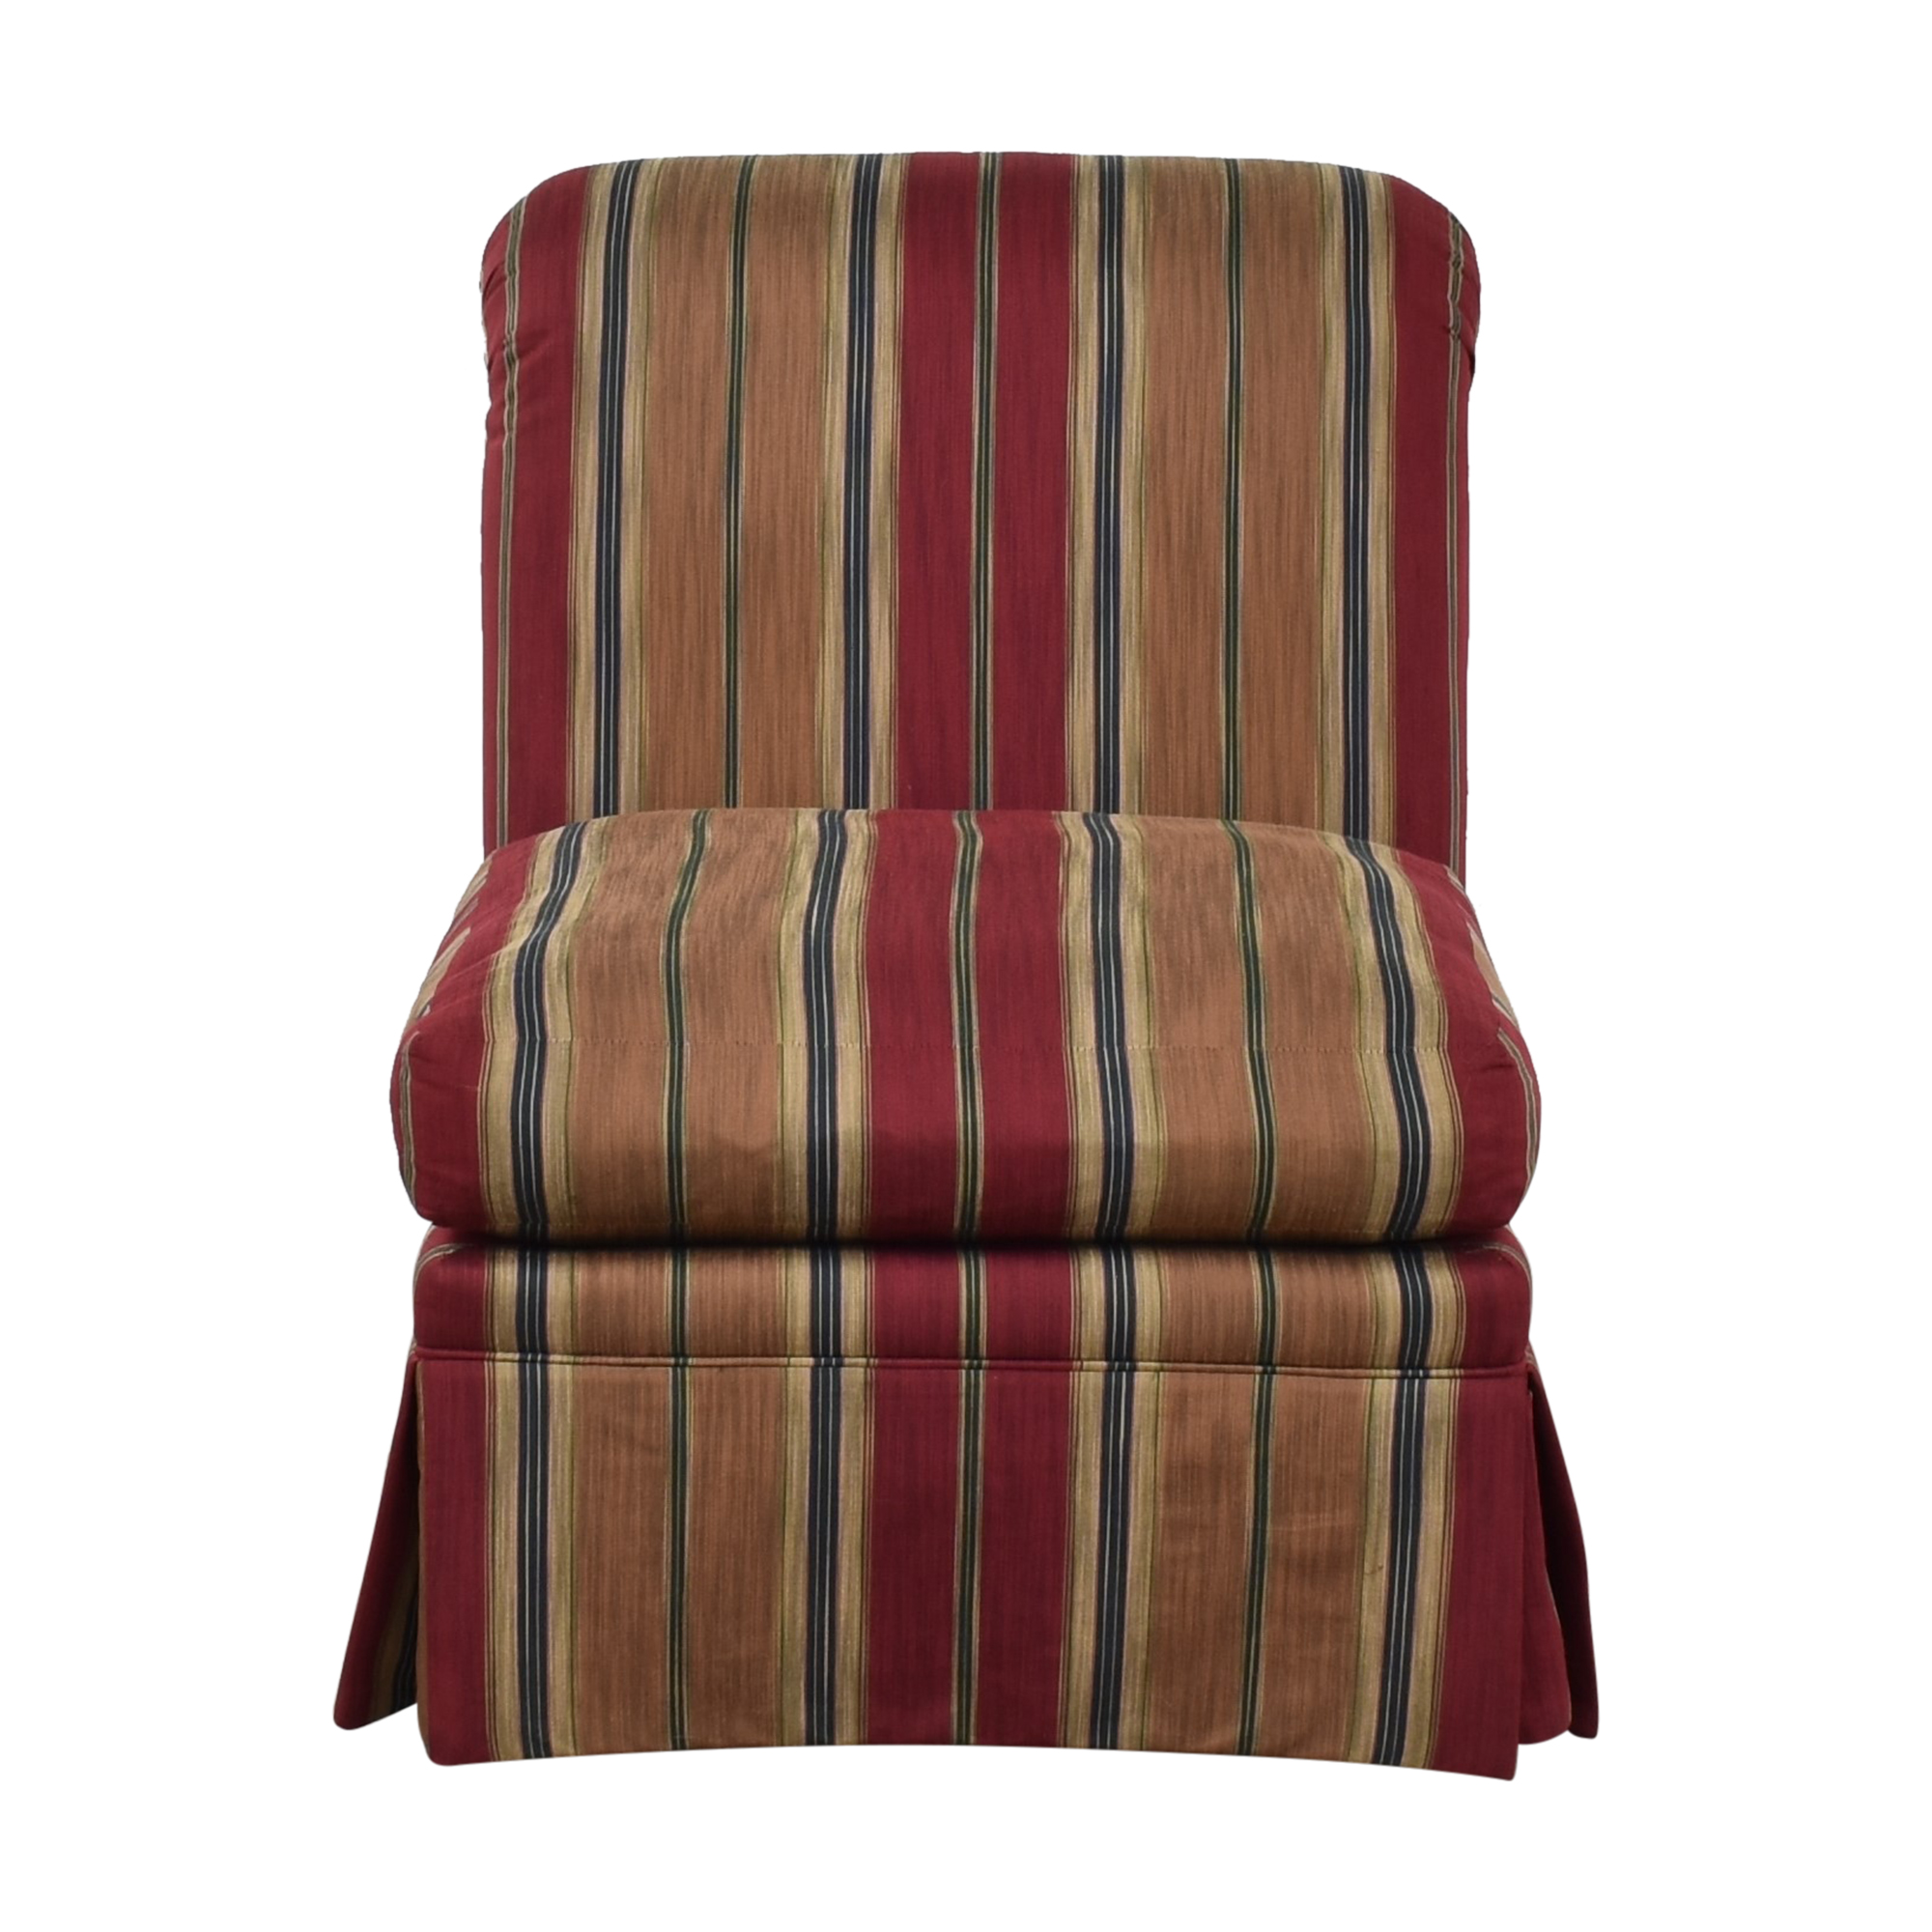 J. Royale Furniture J. Royale Furniture Upholstered Armless Chair price